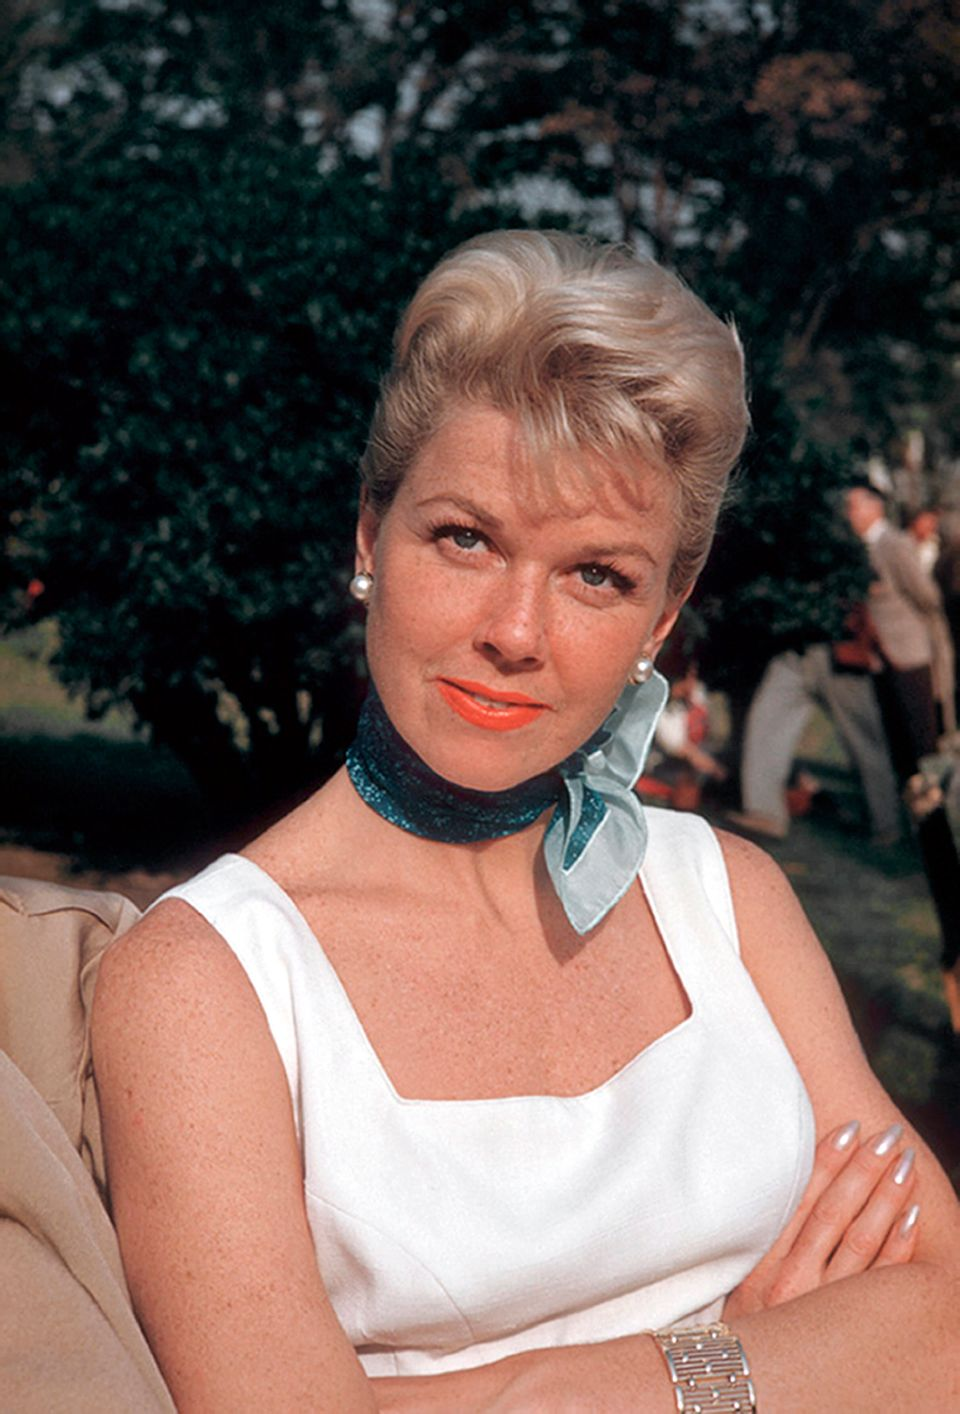 Westlake Legal Group 5cd97dc62100005900802520 A Look Back At Doris Day's Life And Career In Photos